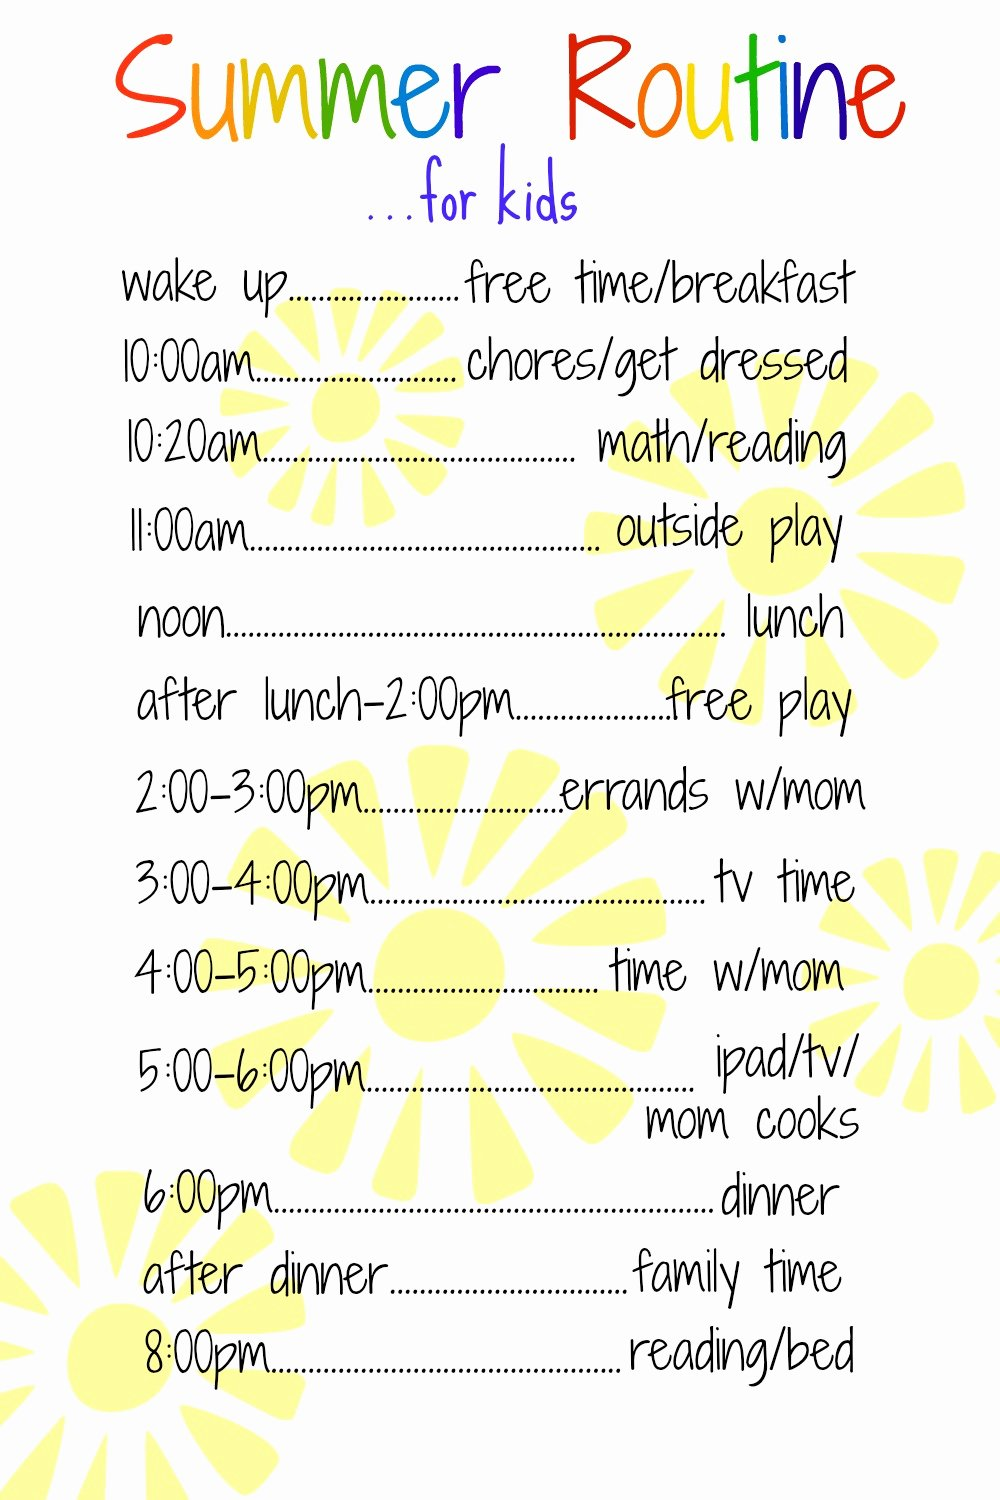 Summer Camp Daily Schedule Template Elegant A Daily Routine for Kids Over the Summer